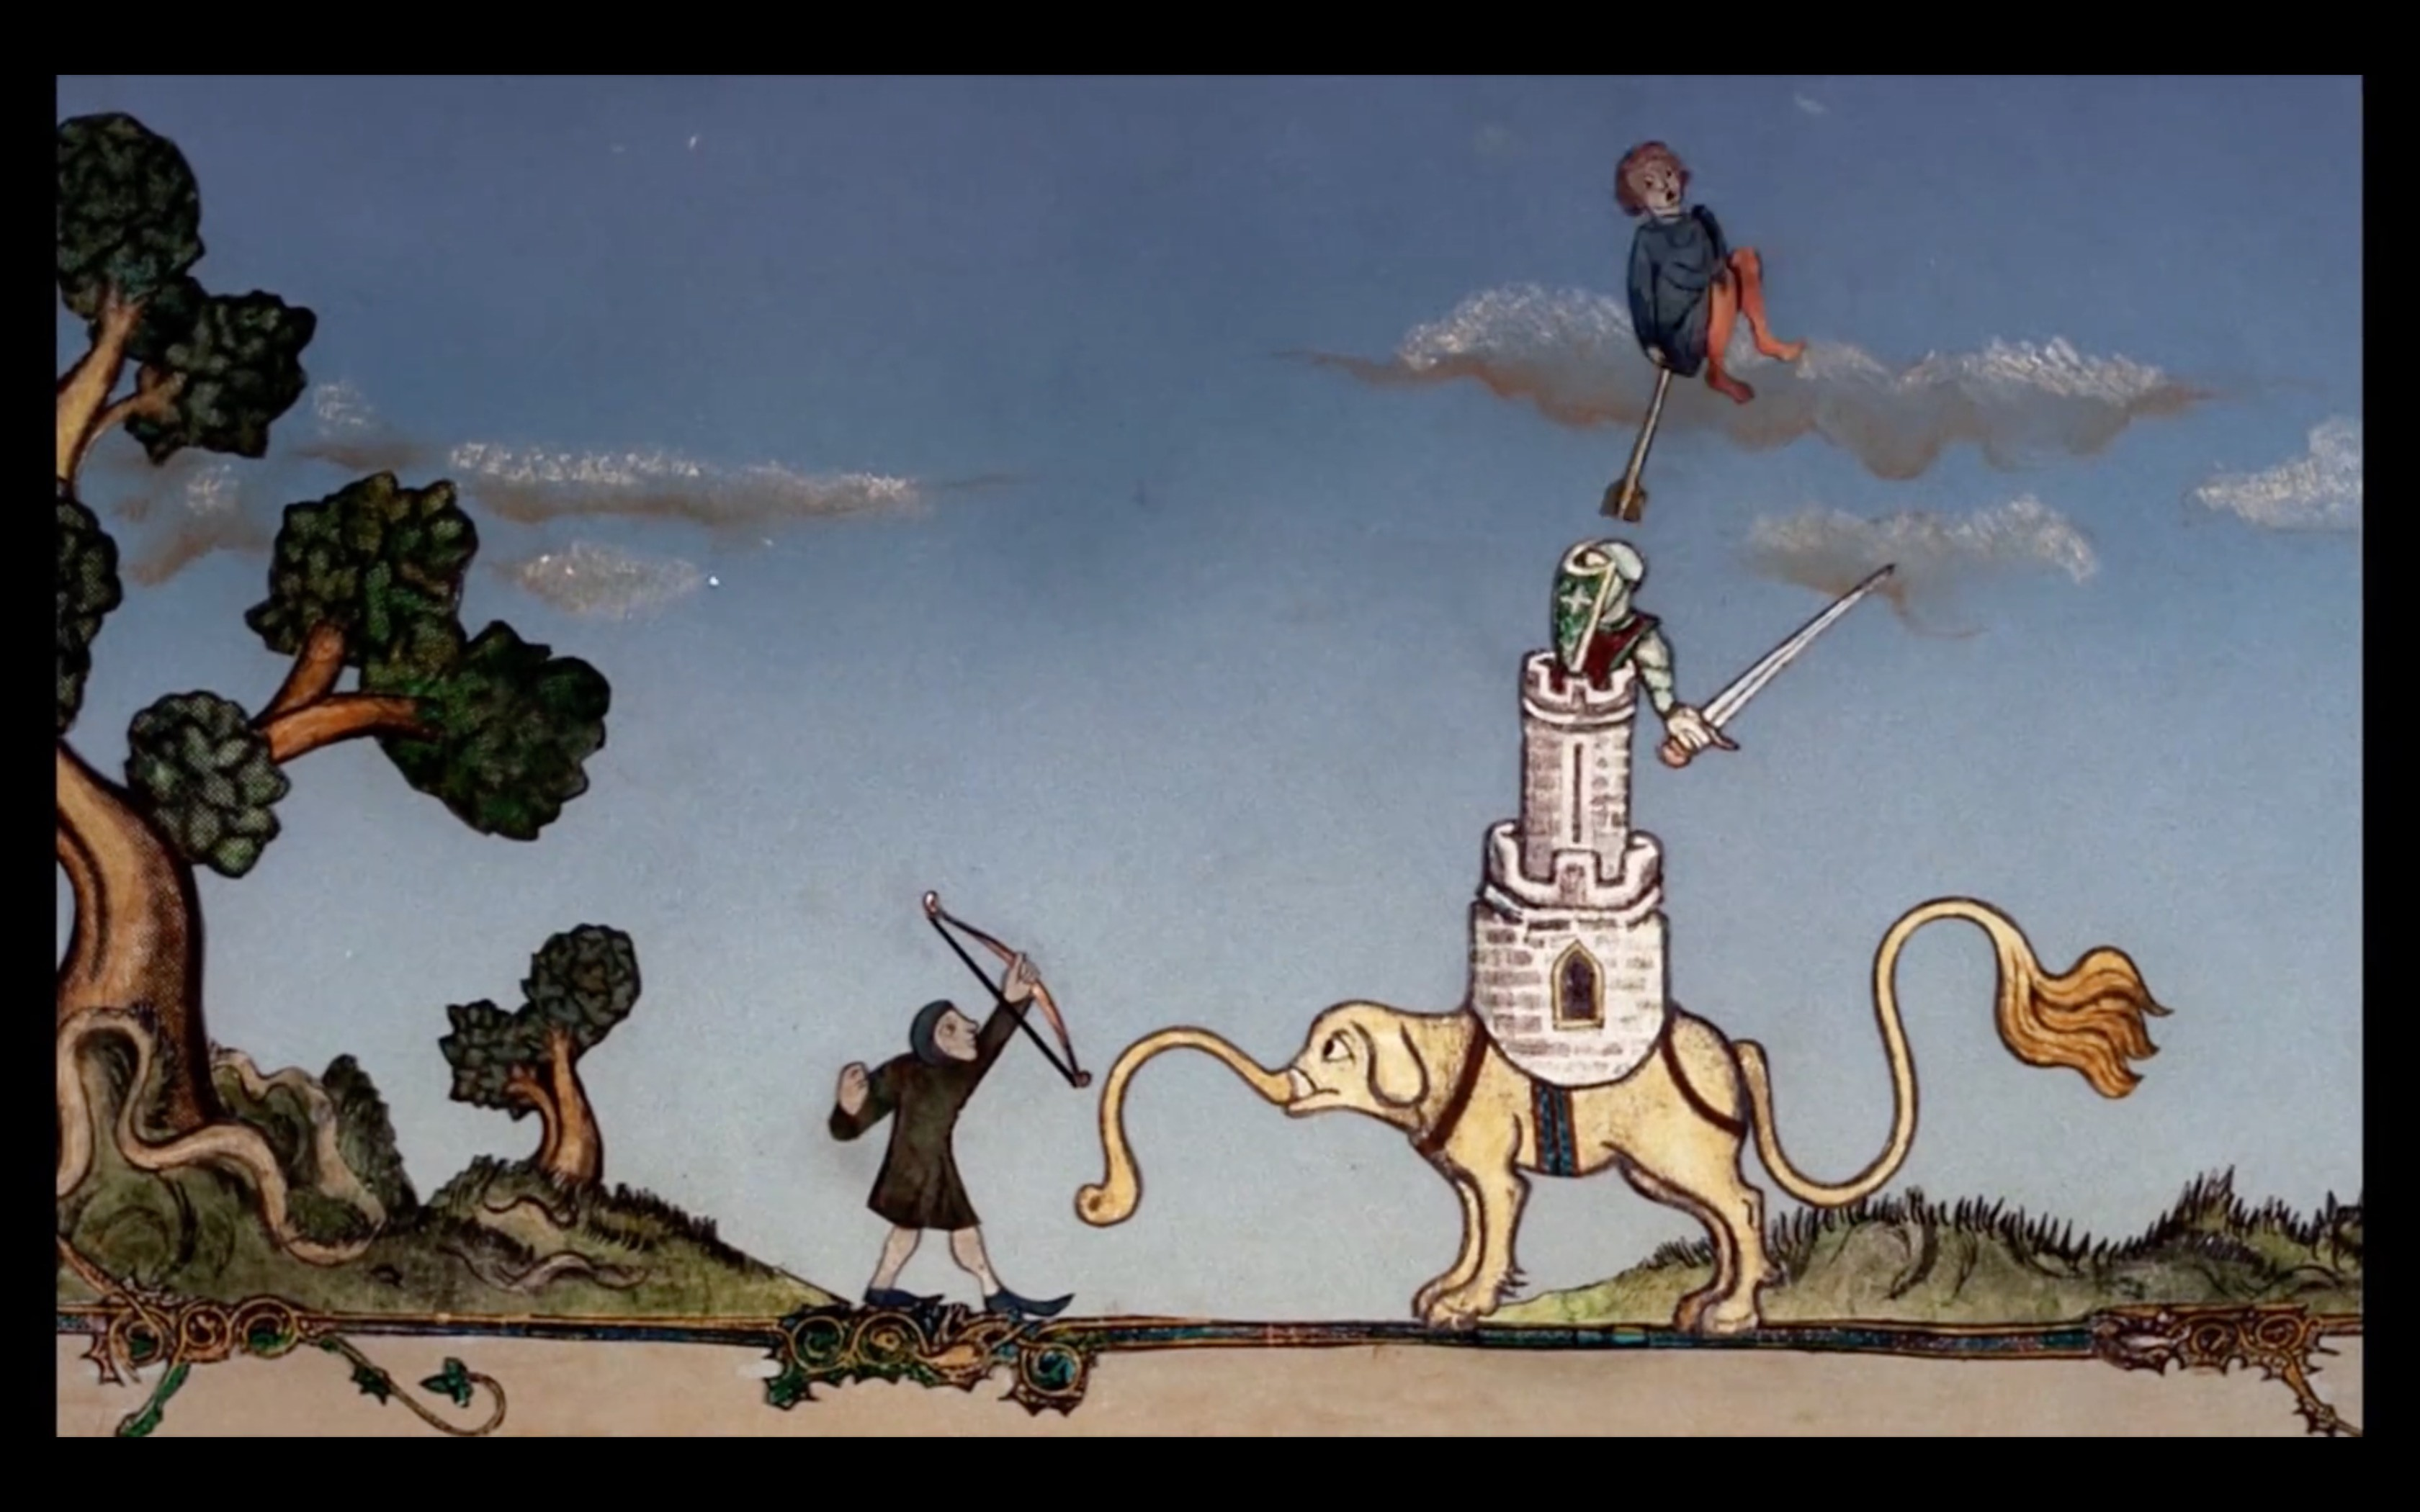 Terry Gilliam's Deleted Animations from Monty Python & The Holy Grail